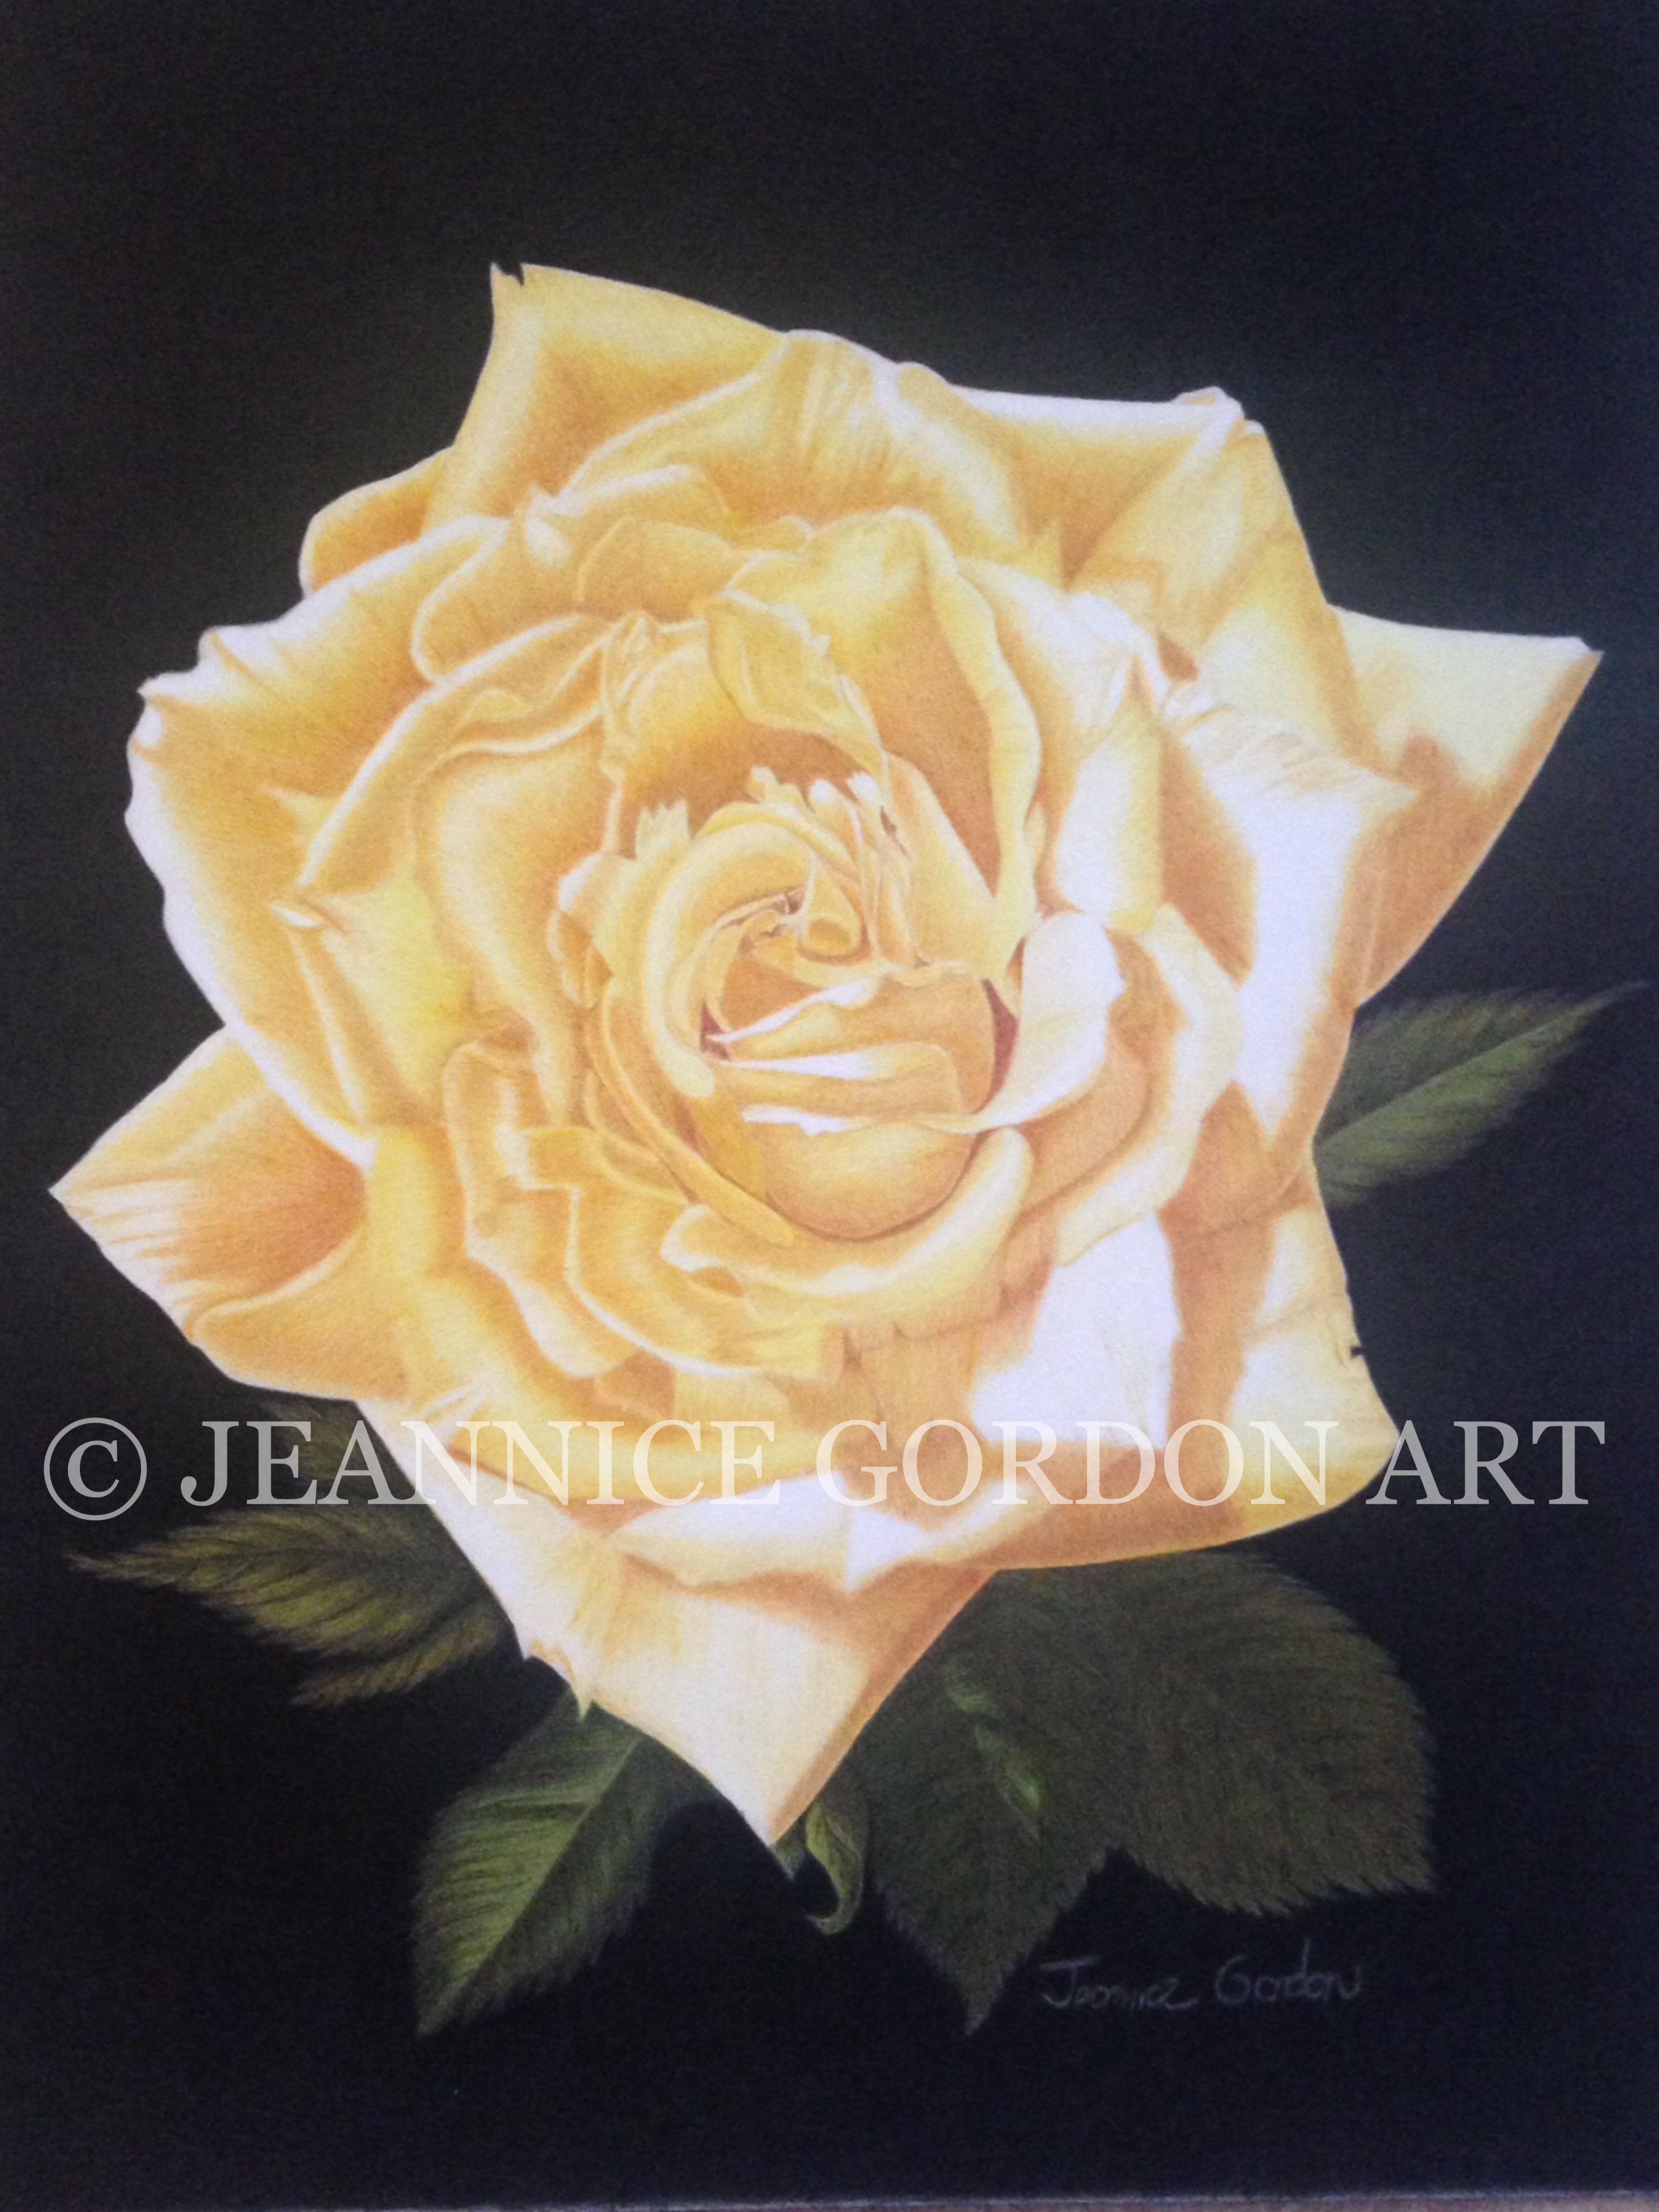 Julie's Yellow Rose by Jeannice Gordon